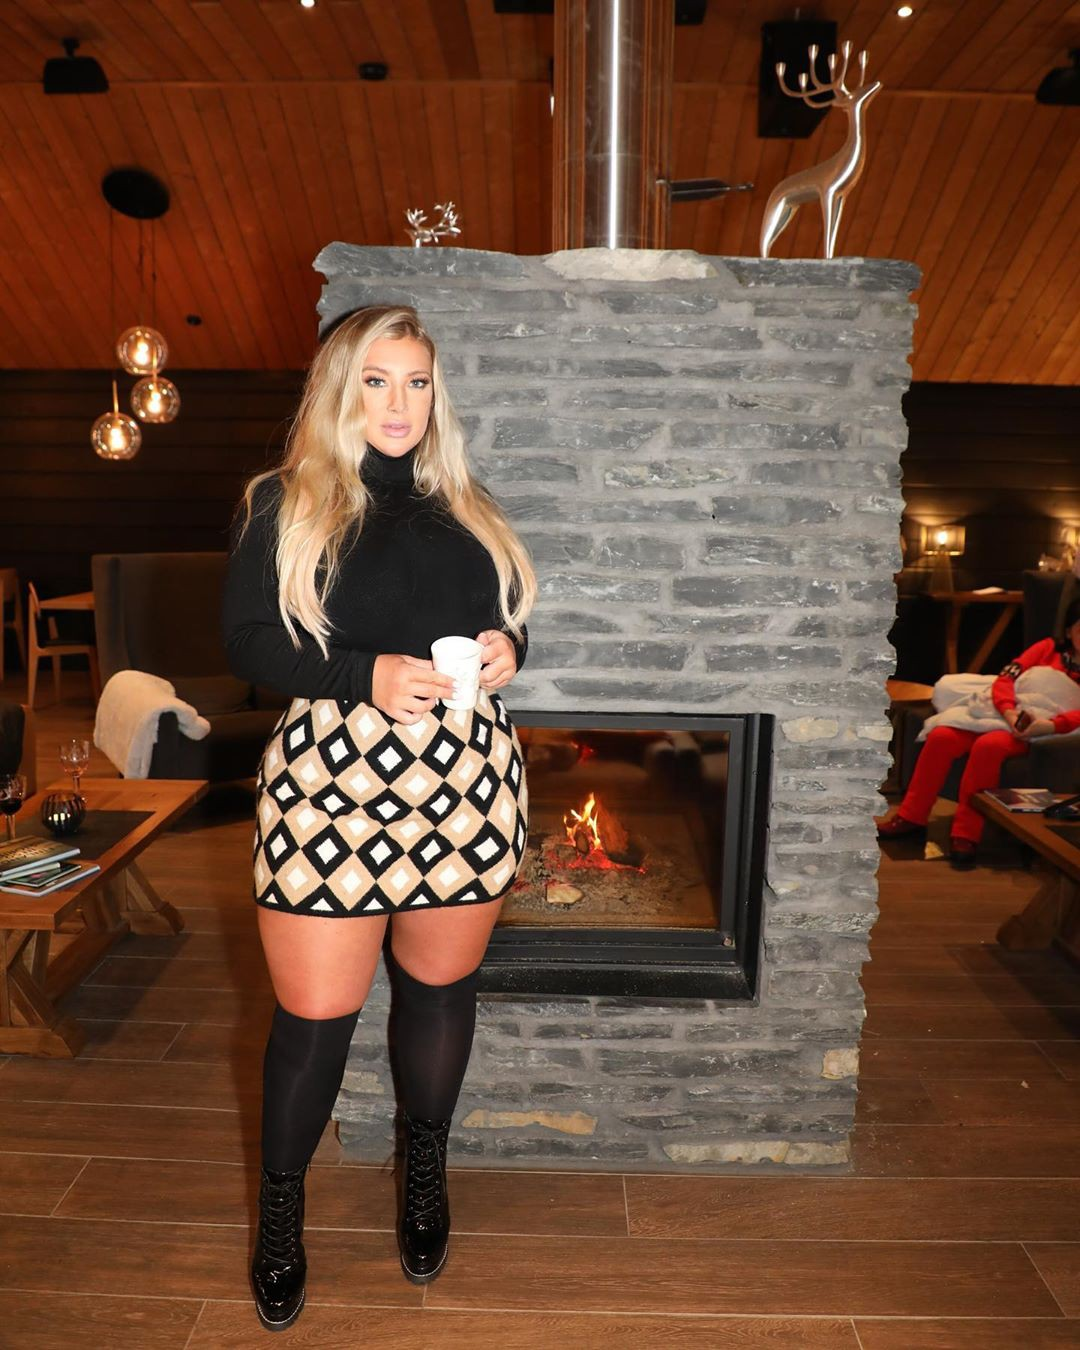 Taya Christian stocking, tights colour outfit, you must try, hot girls thighs